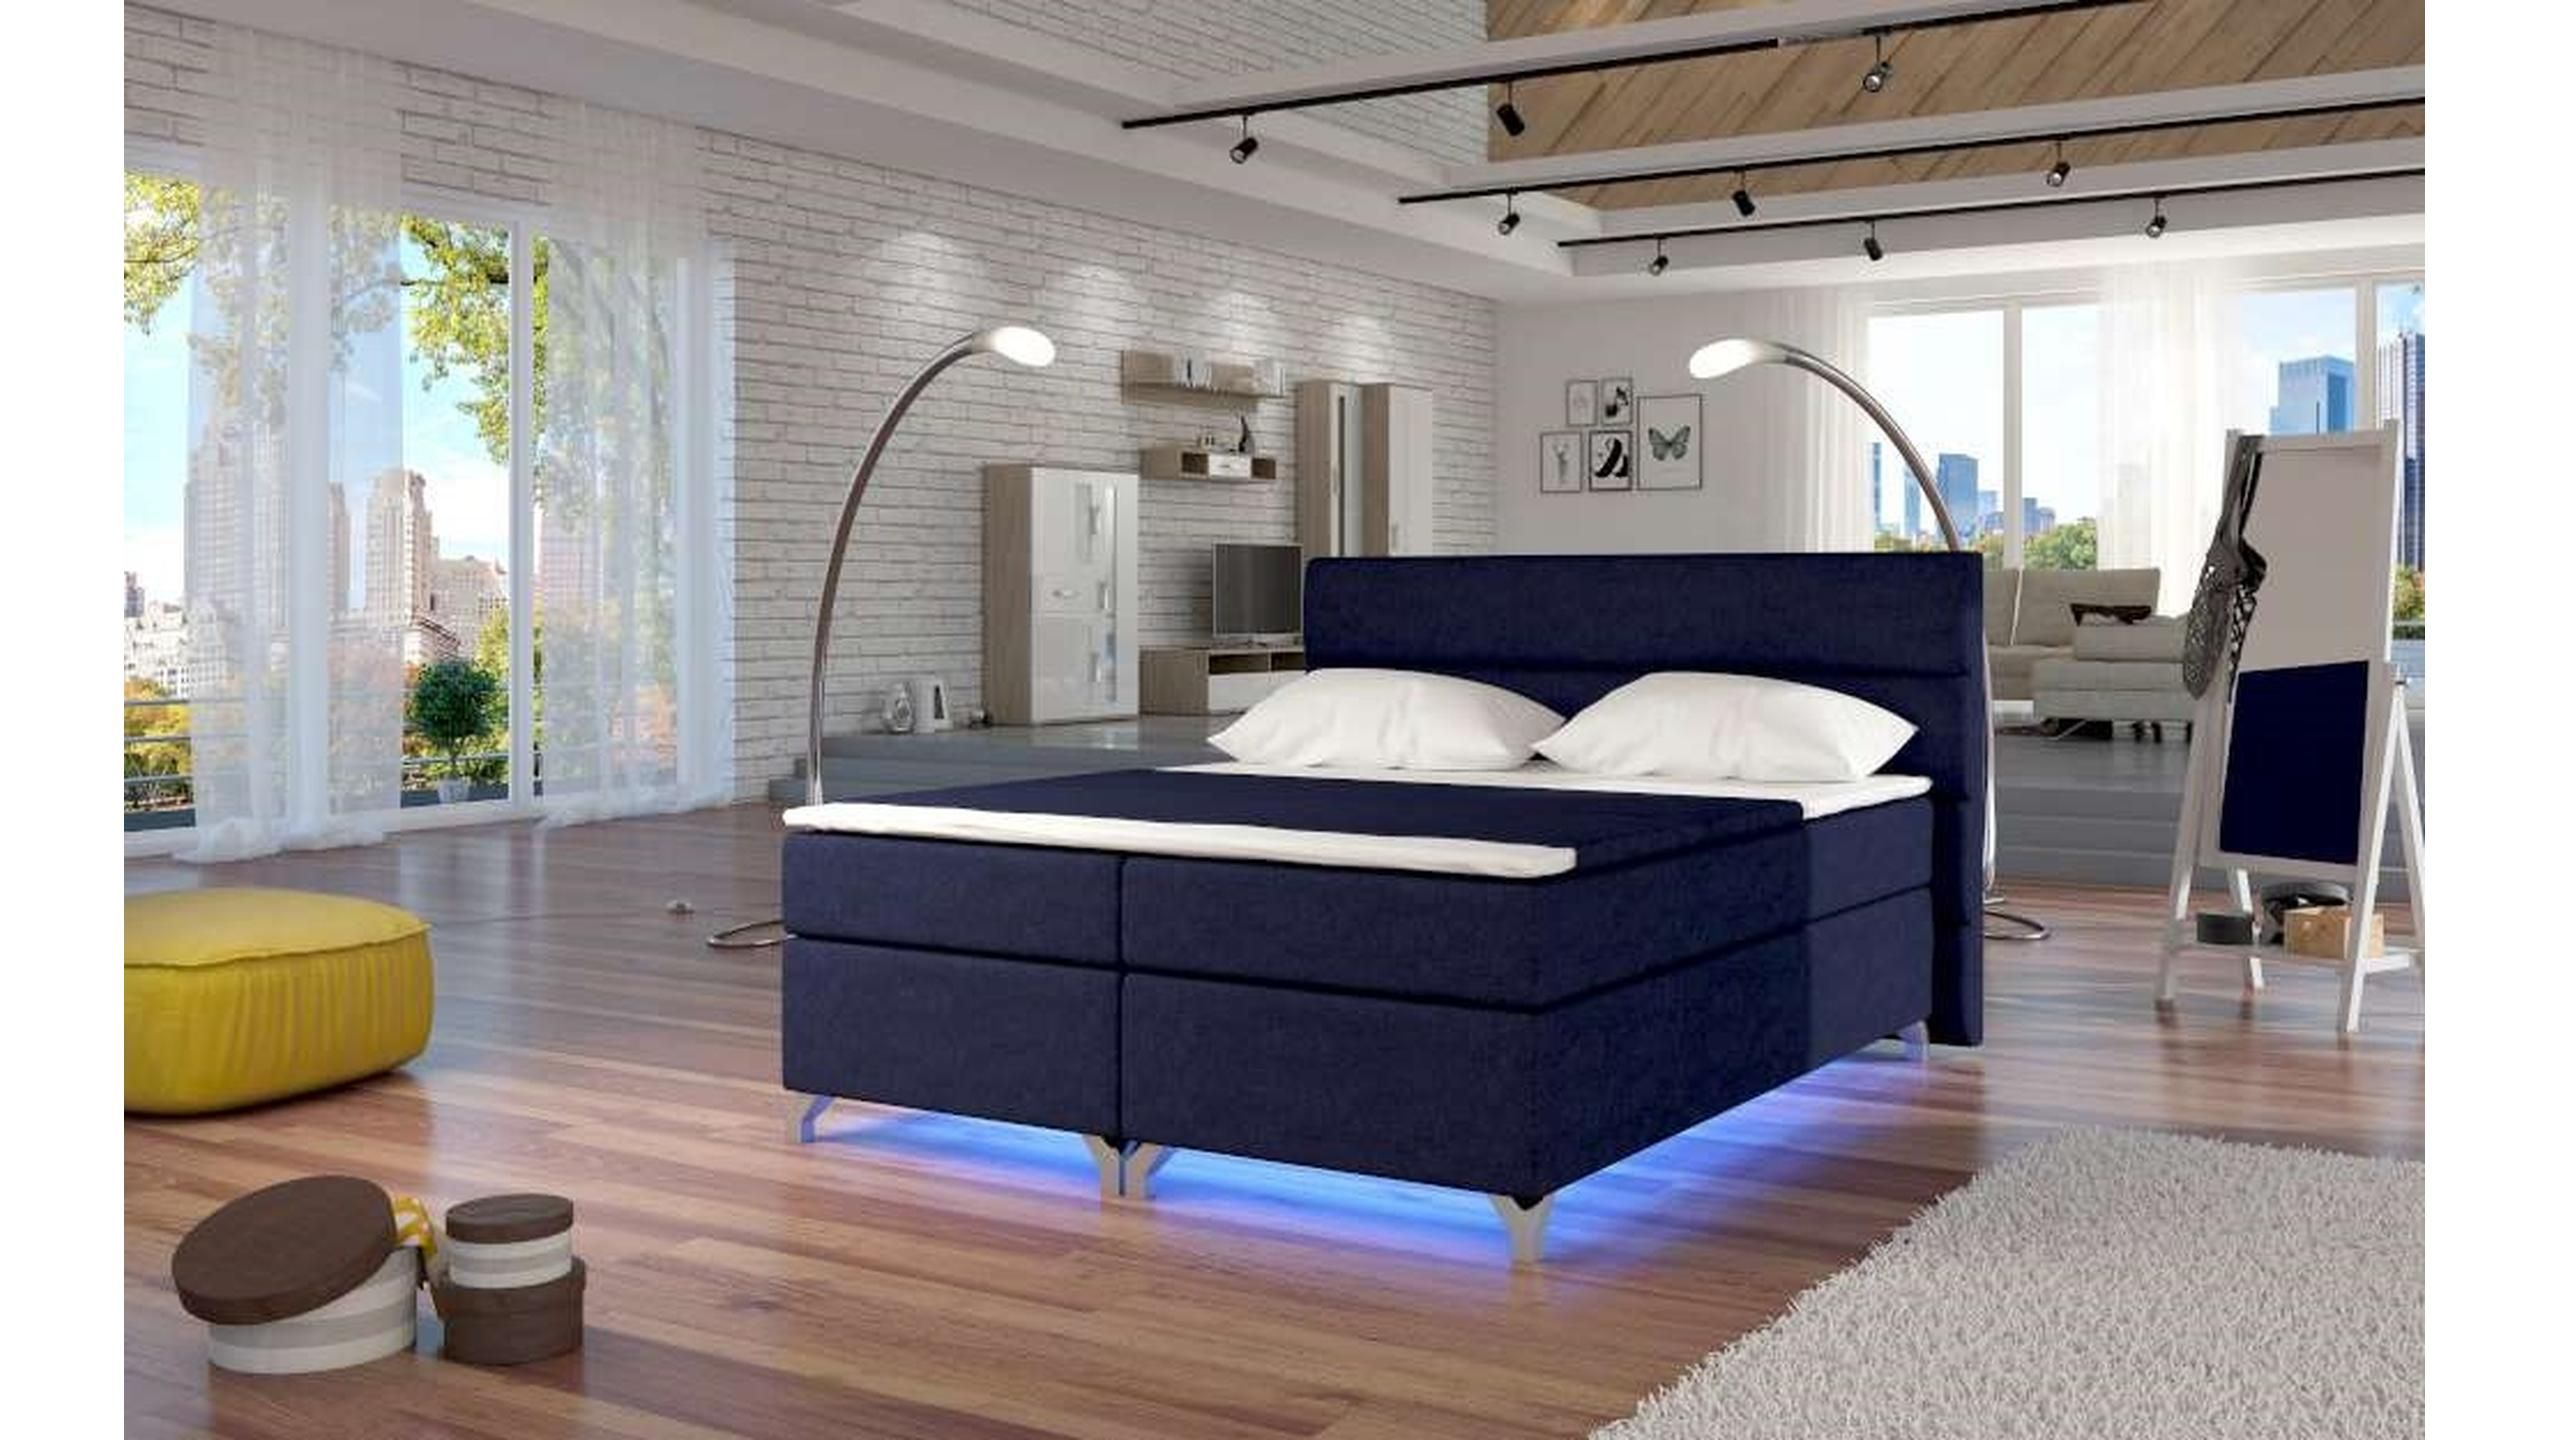 Justyou Amadeo Led Boxspringbett 185x205x126 Cm Blau Schlafzimmer Bedroom Bedroomideas Furniture Bed Bett Boxspringbett Boxspringbett Bett